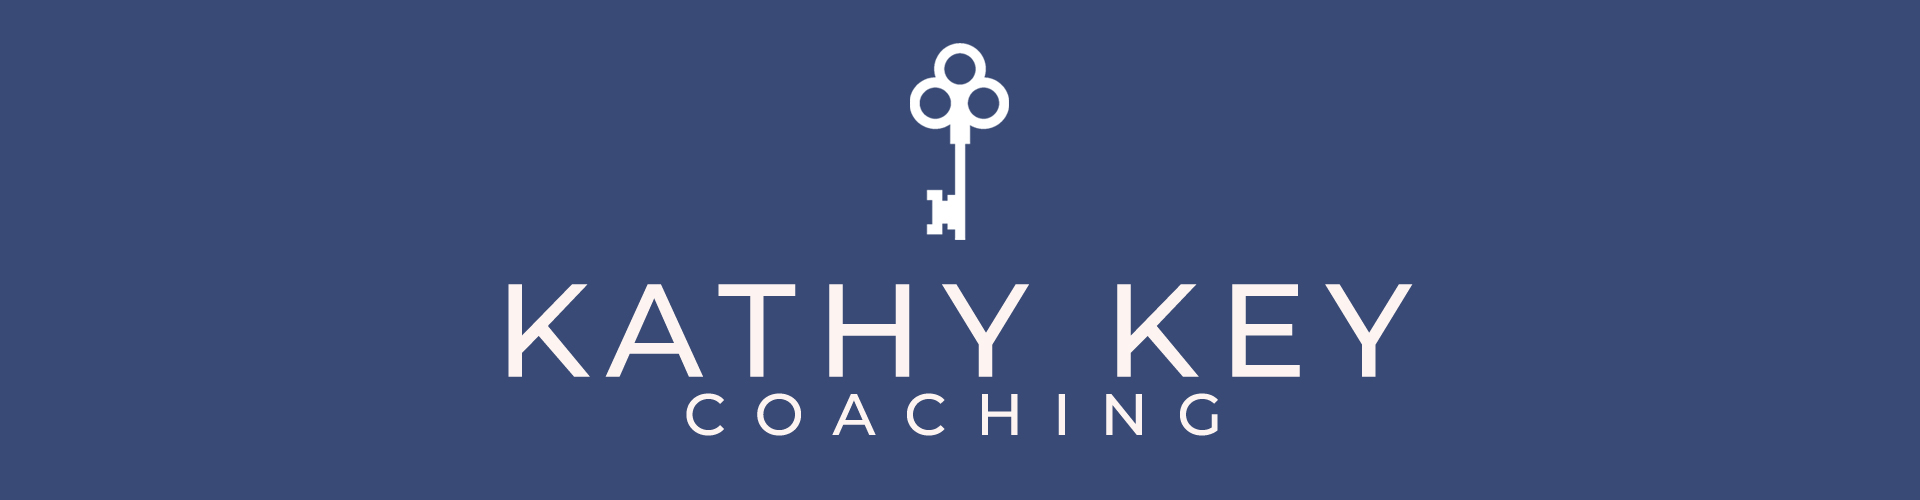 Kathy Key Coaching Website Header.jpg